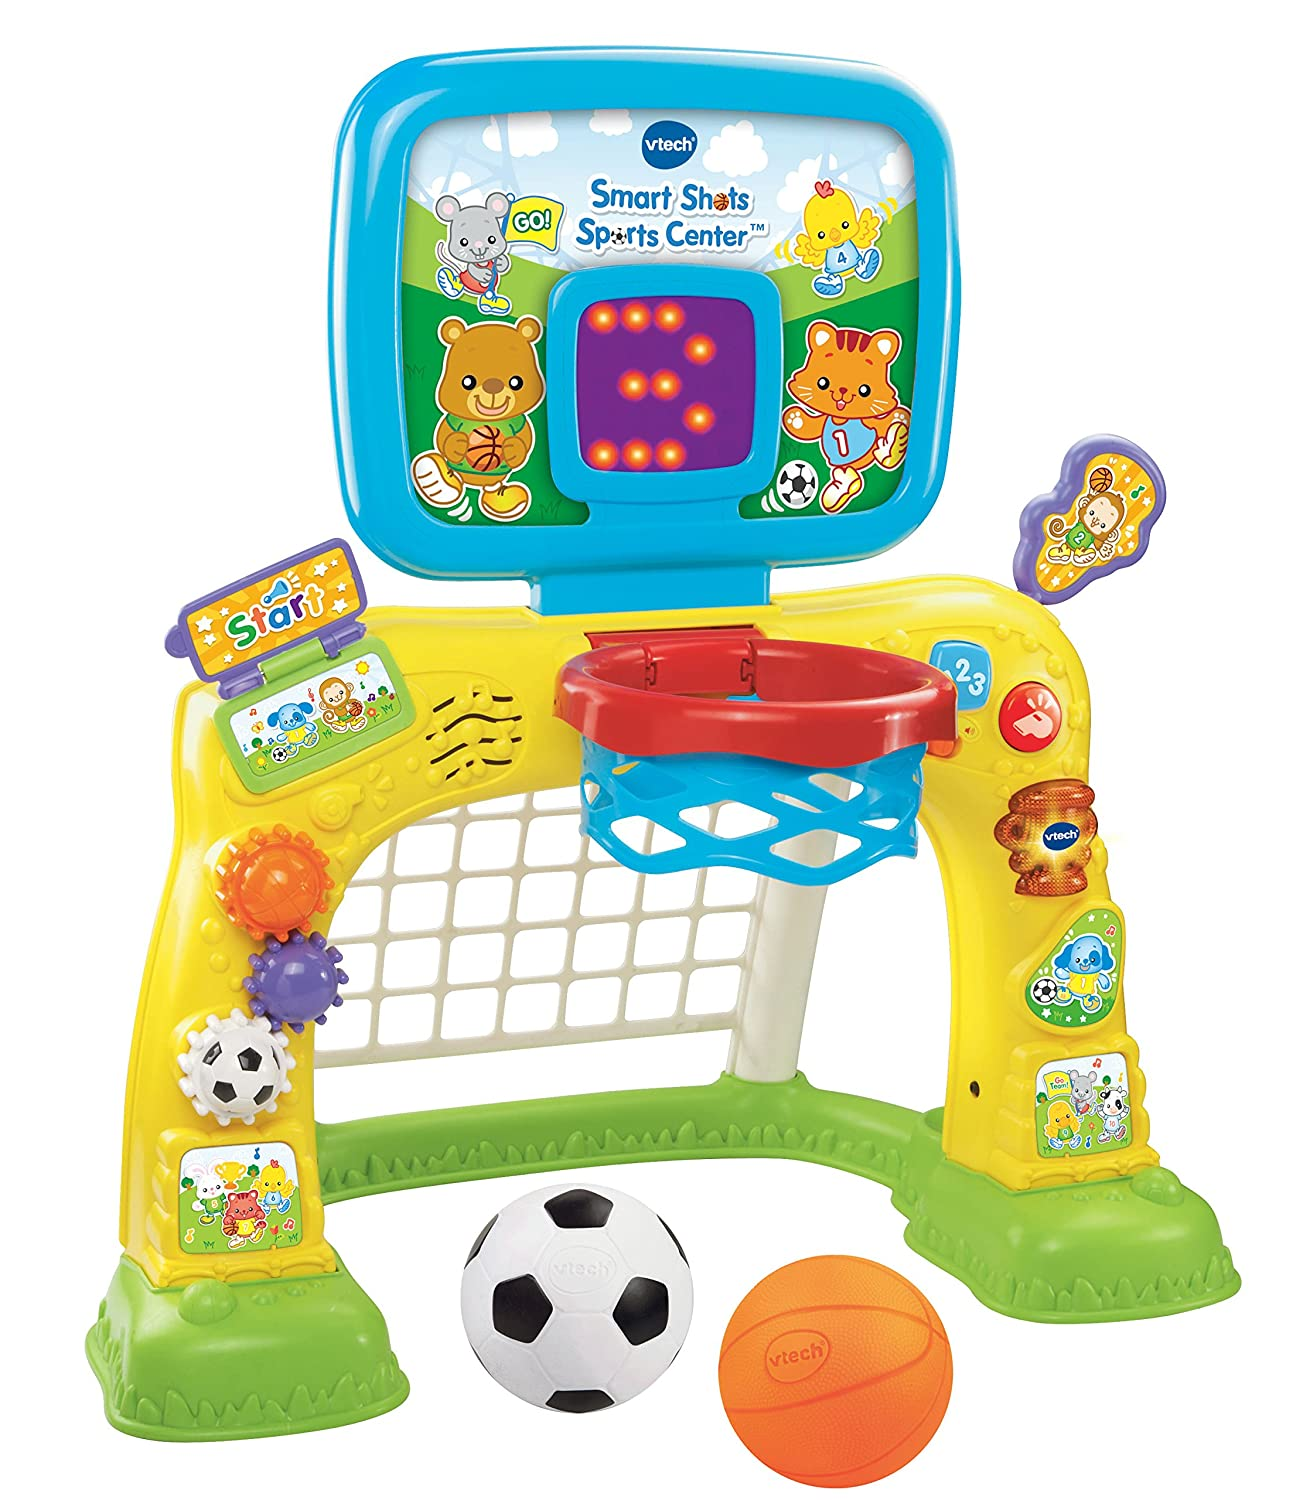 Popular Toys For 2 Year Olds : Best toys for year old boys